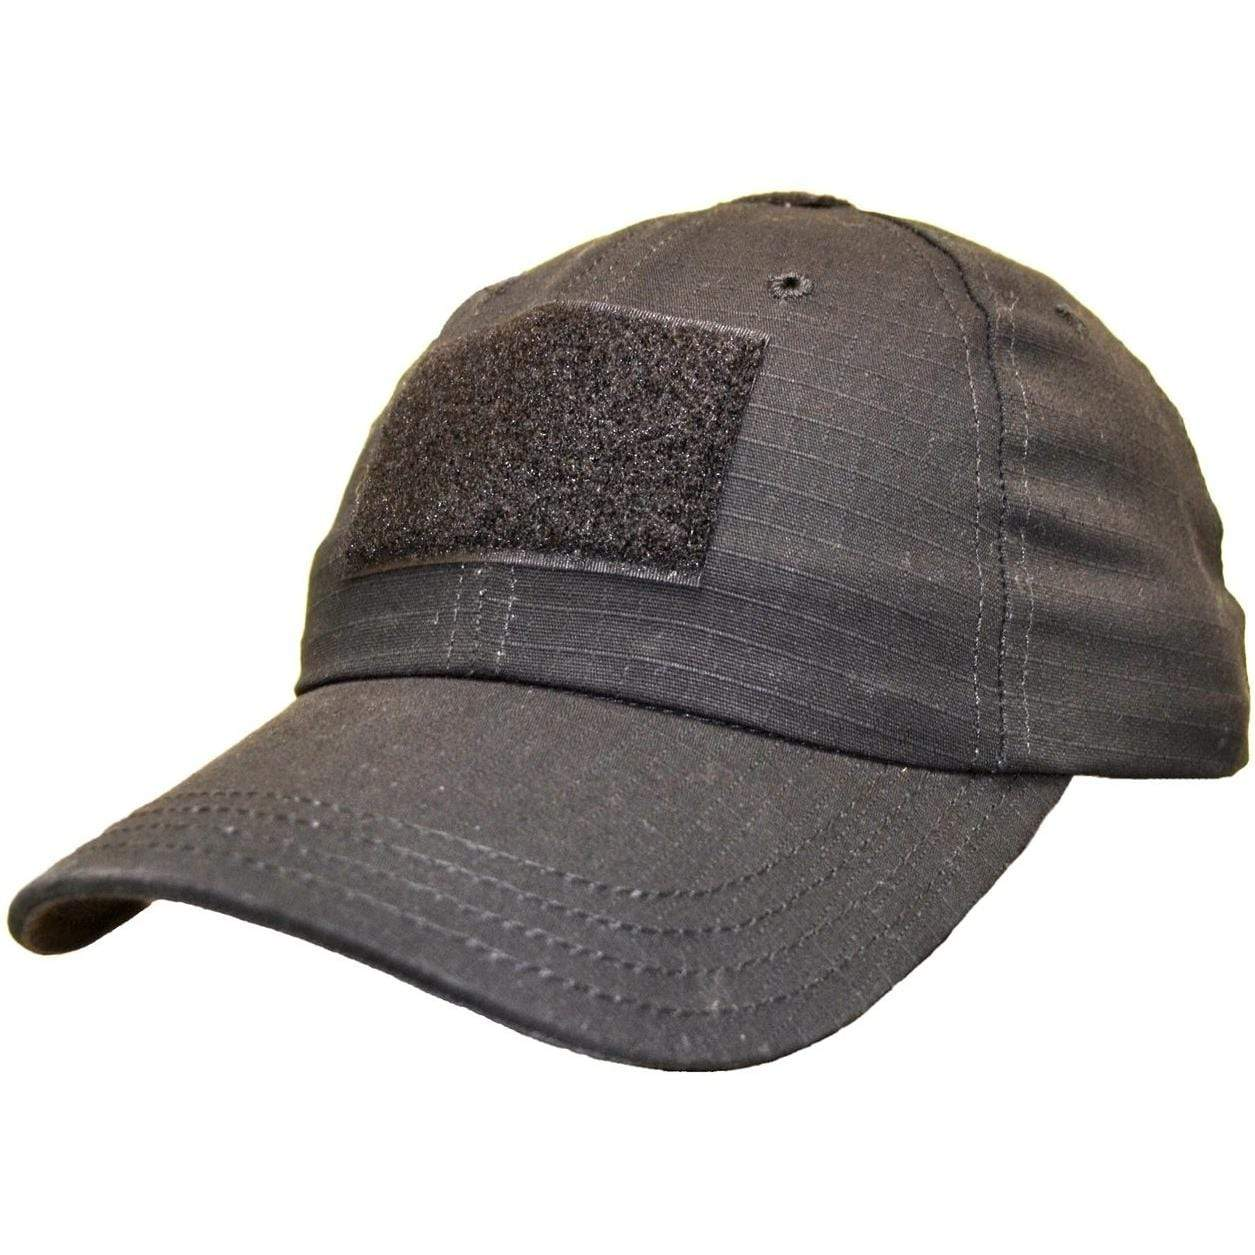 Tactical Gear Junkie Apparel Black Tactical Gear Junkie American Made Tactical Operator Hat